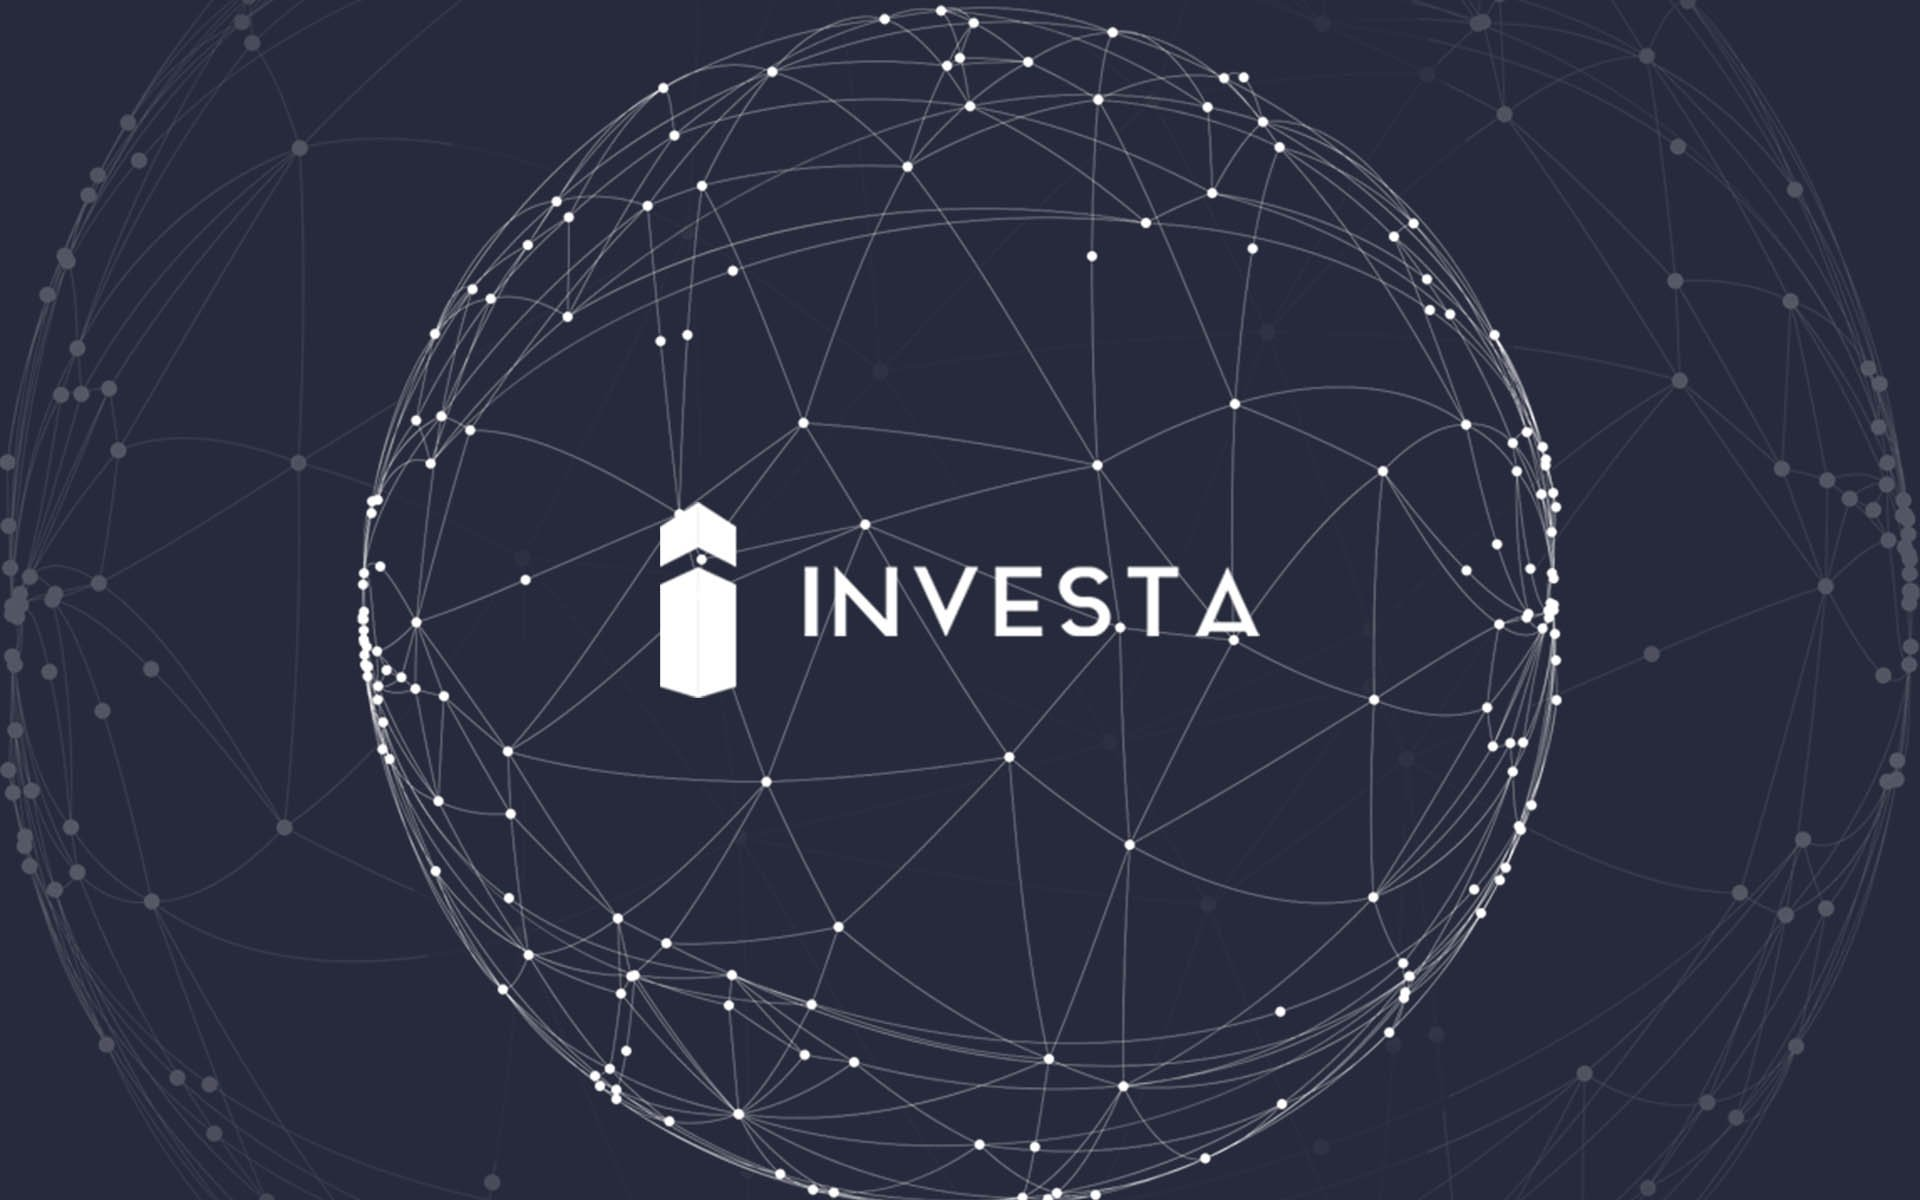 Investaco.in, the Fully Transparent Investing Platform of the Future Announces Token Pre-Sale Beginning May 1st, 2018